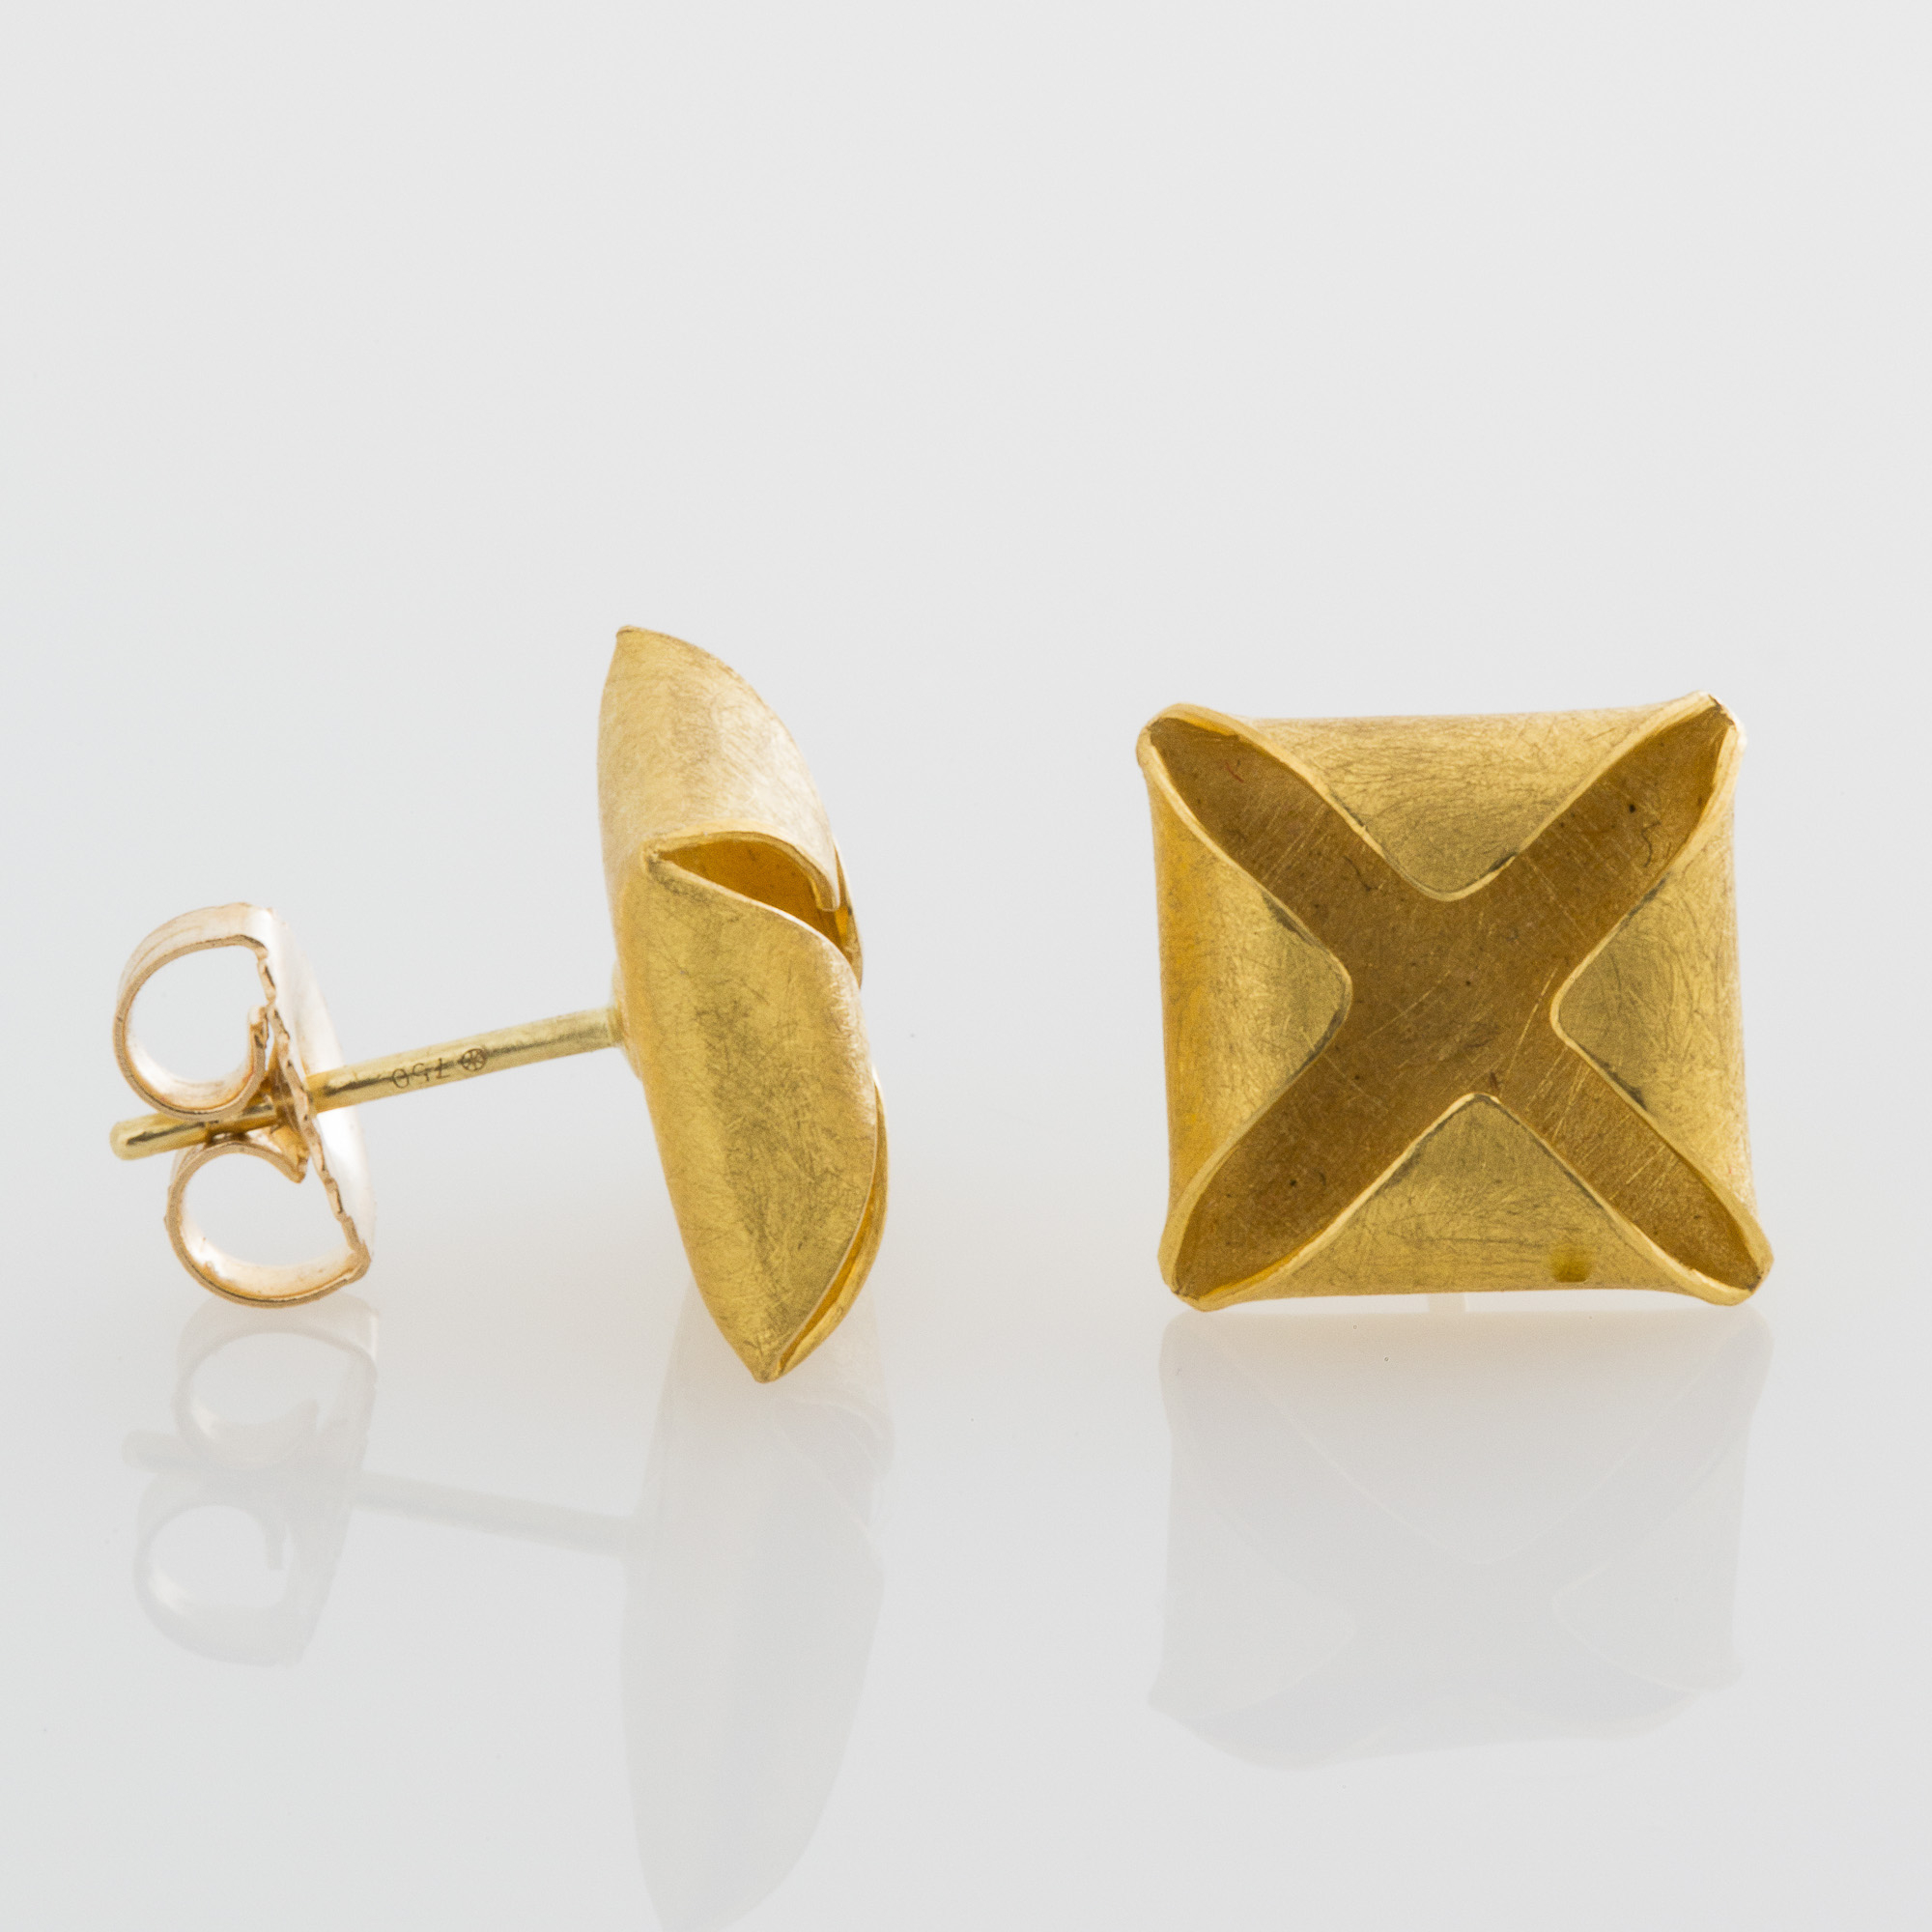 Petra Class Textured Gold Box Studs